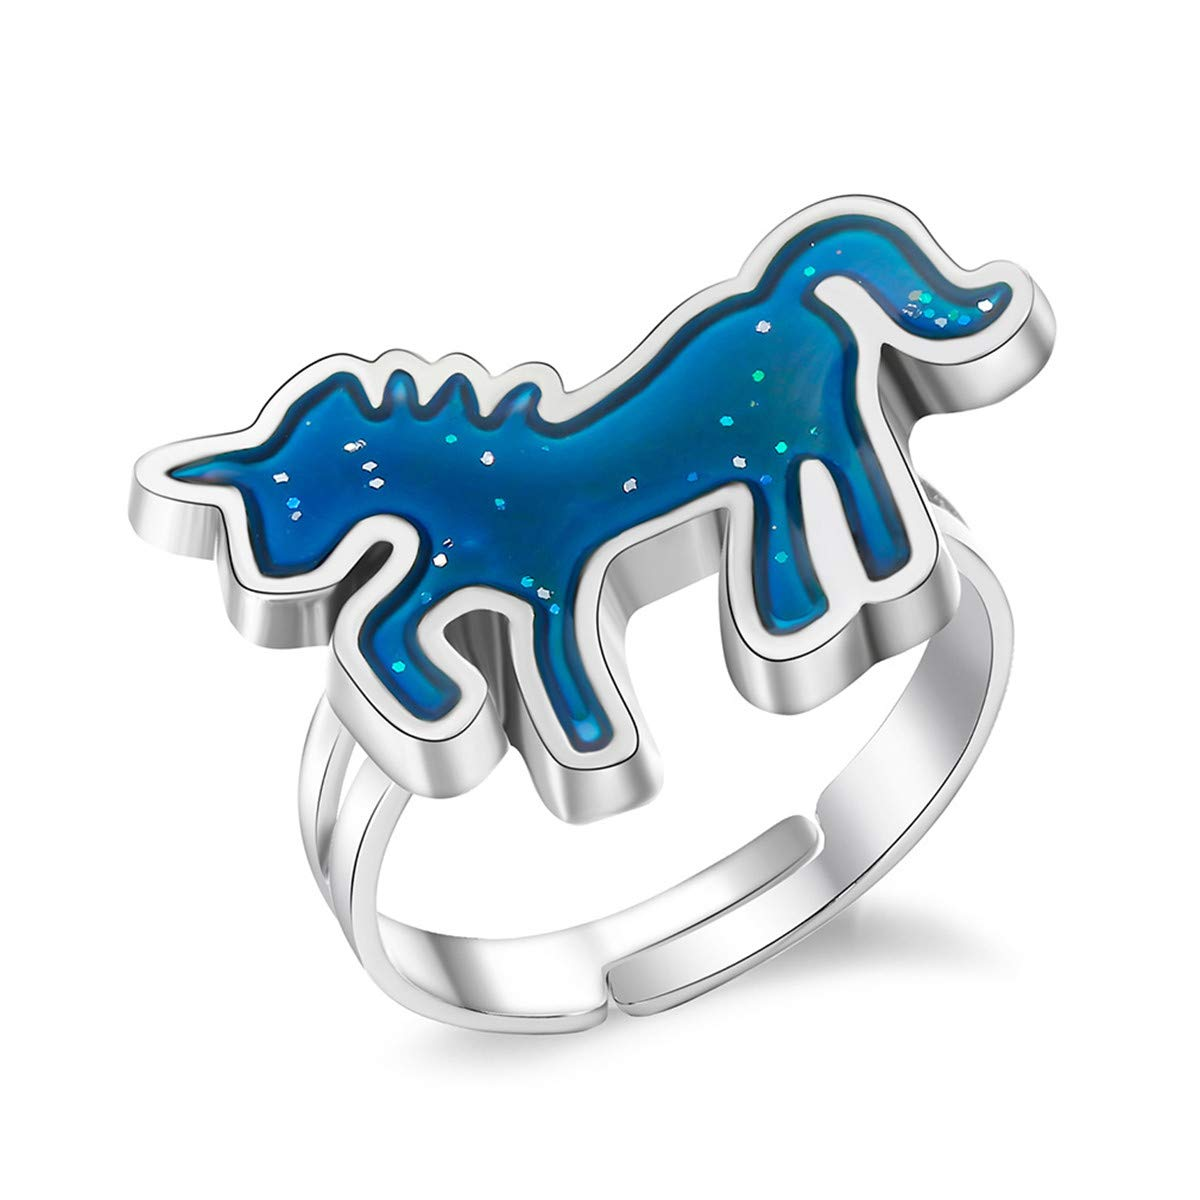 Beiswe Cute Unicorn Finger Ring Creative Change Color Mood Emotion Unicorn Rings for Women Girls Surprise Birthday Gift